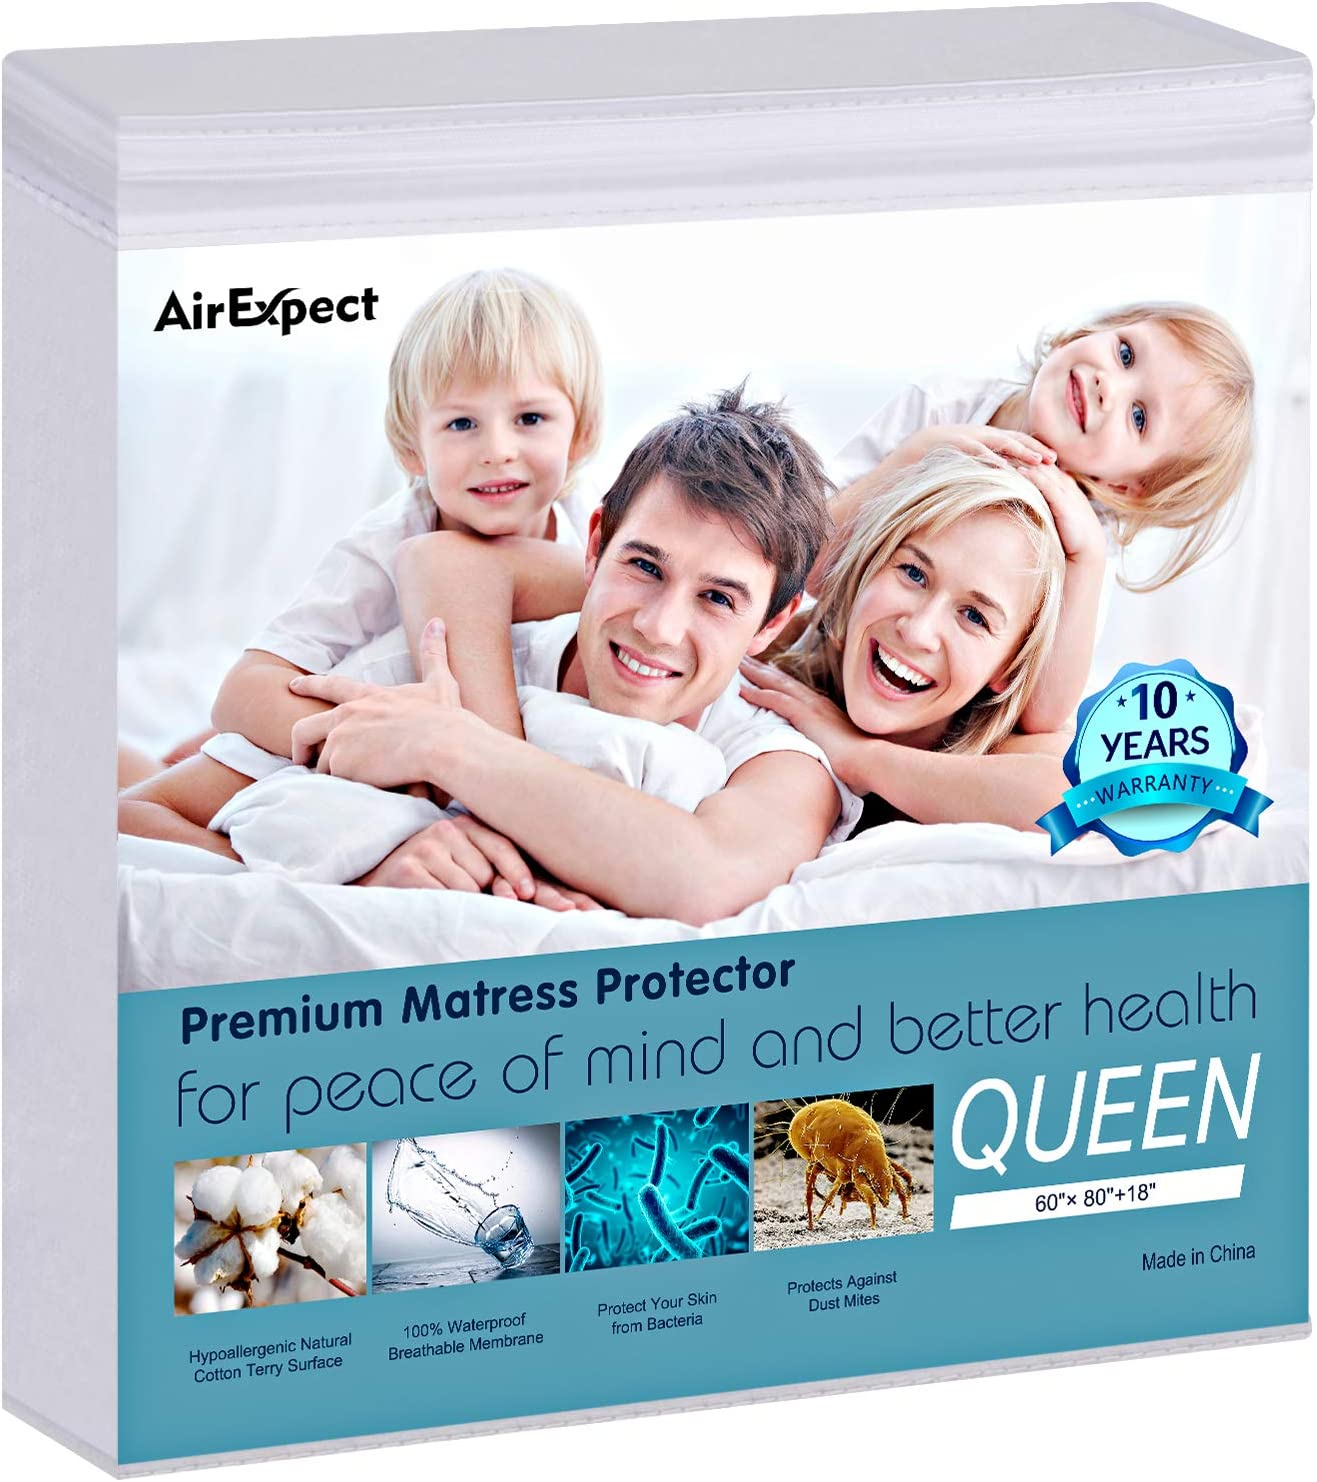 "Waterproof Mattress Protector Queen Size - AirExpect100% Organic Cotton Hypoallergenic Breathable Mattress Pad Cover, 18"" Deep Pocket, Vinyl Free - 60"" x 80"""